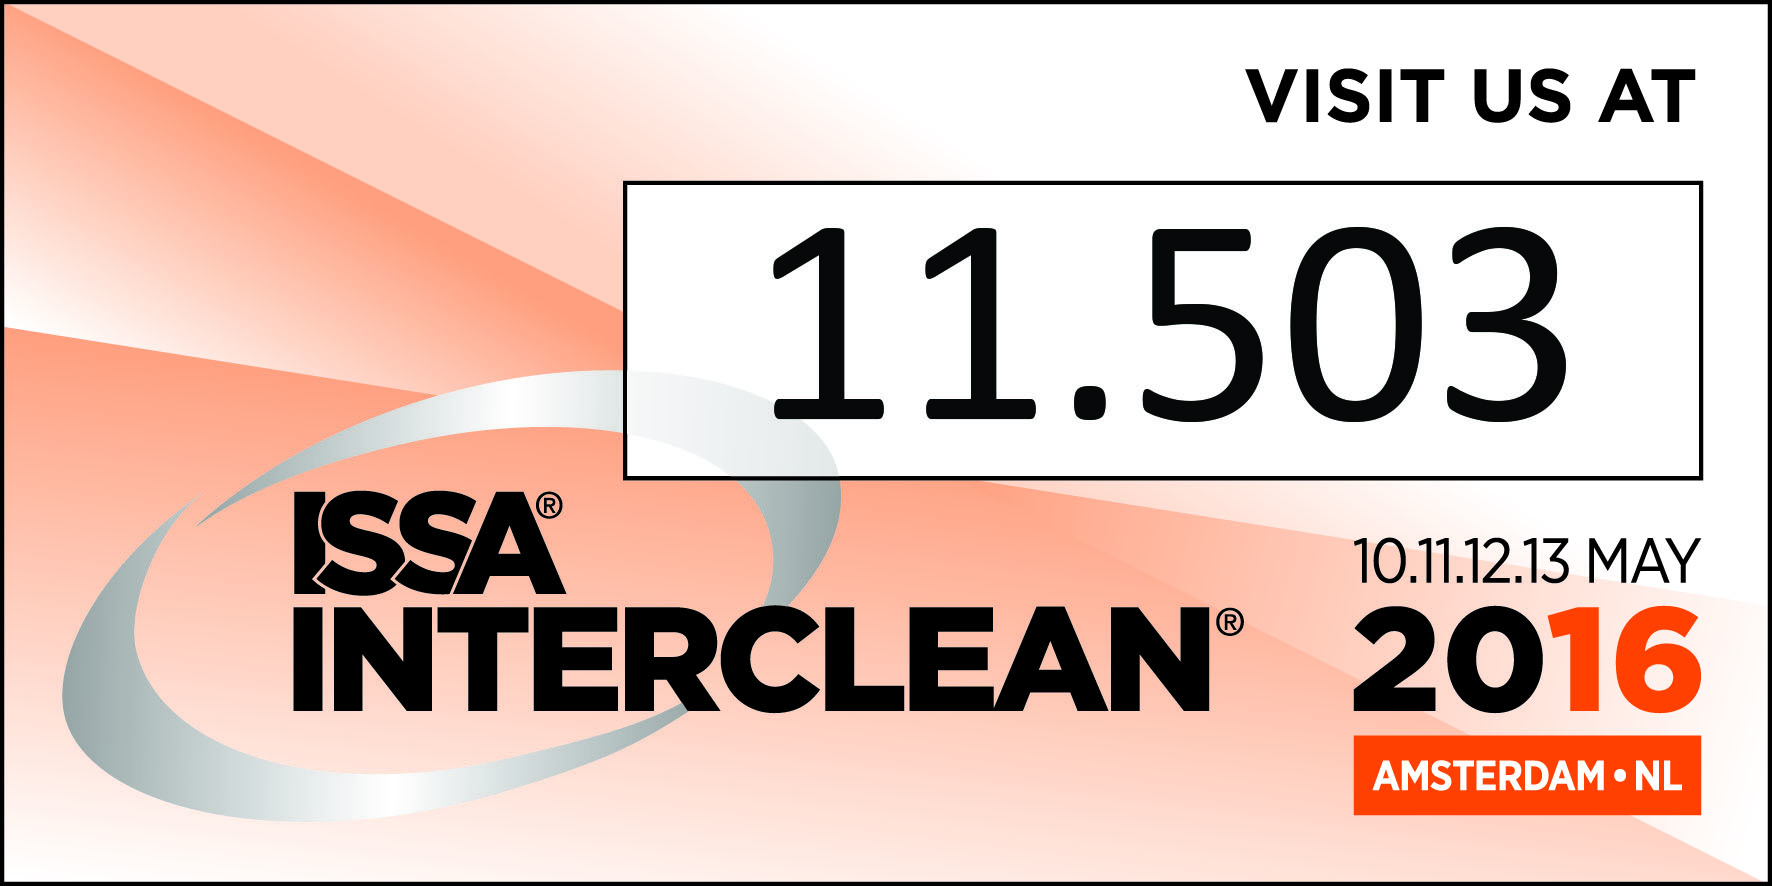 ISSA Interclean, Amsterdam 10th-13th May 2016